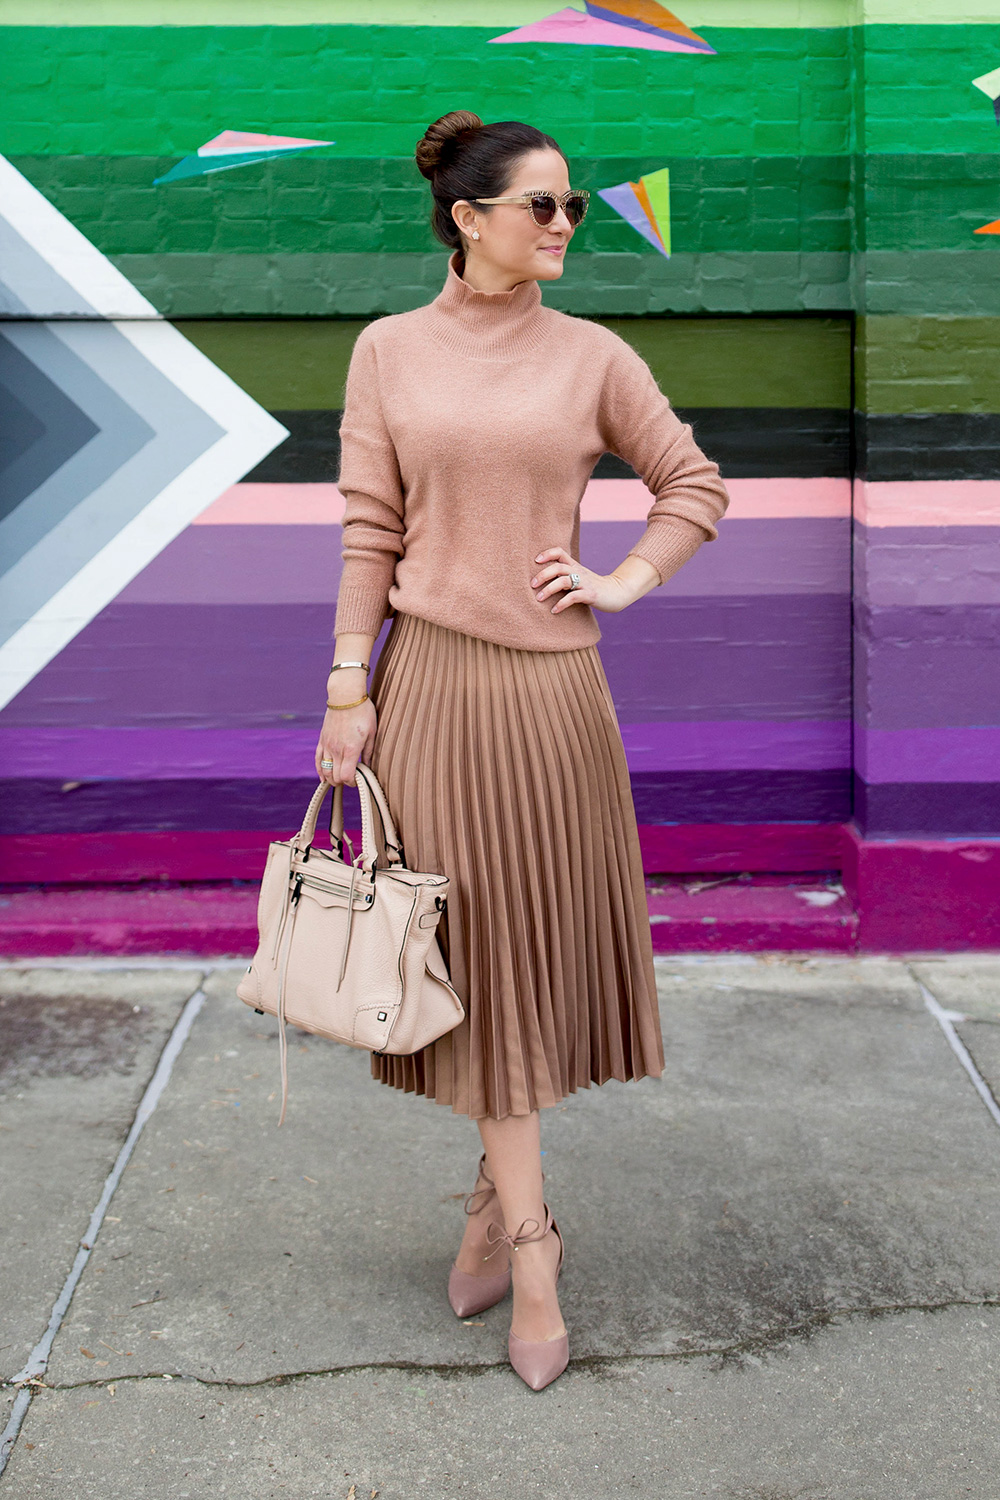 ASOS Tan Pleated Skirt